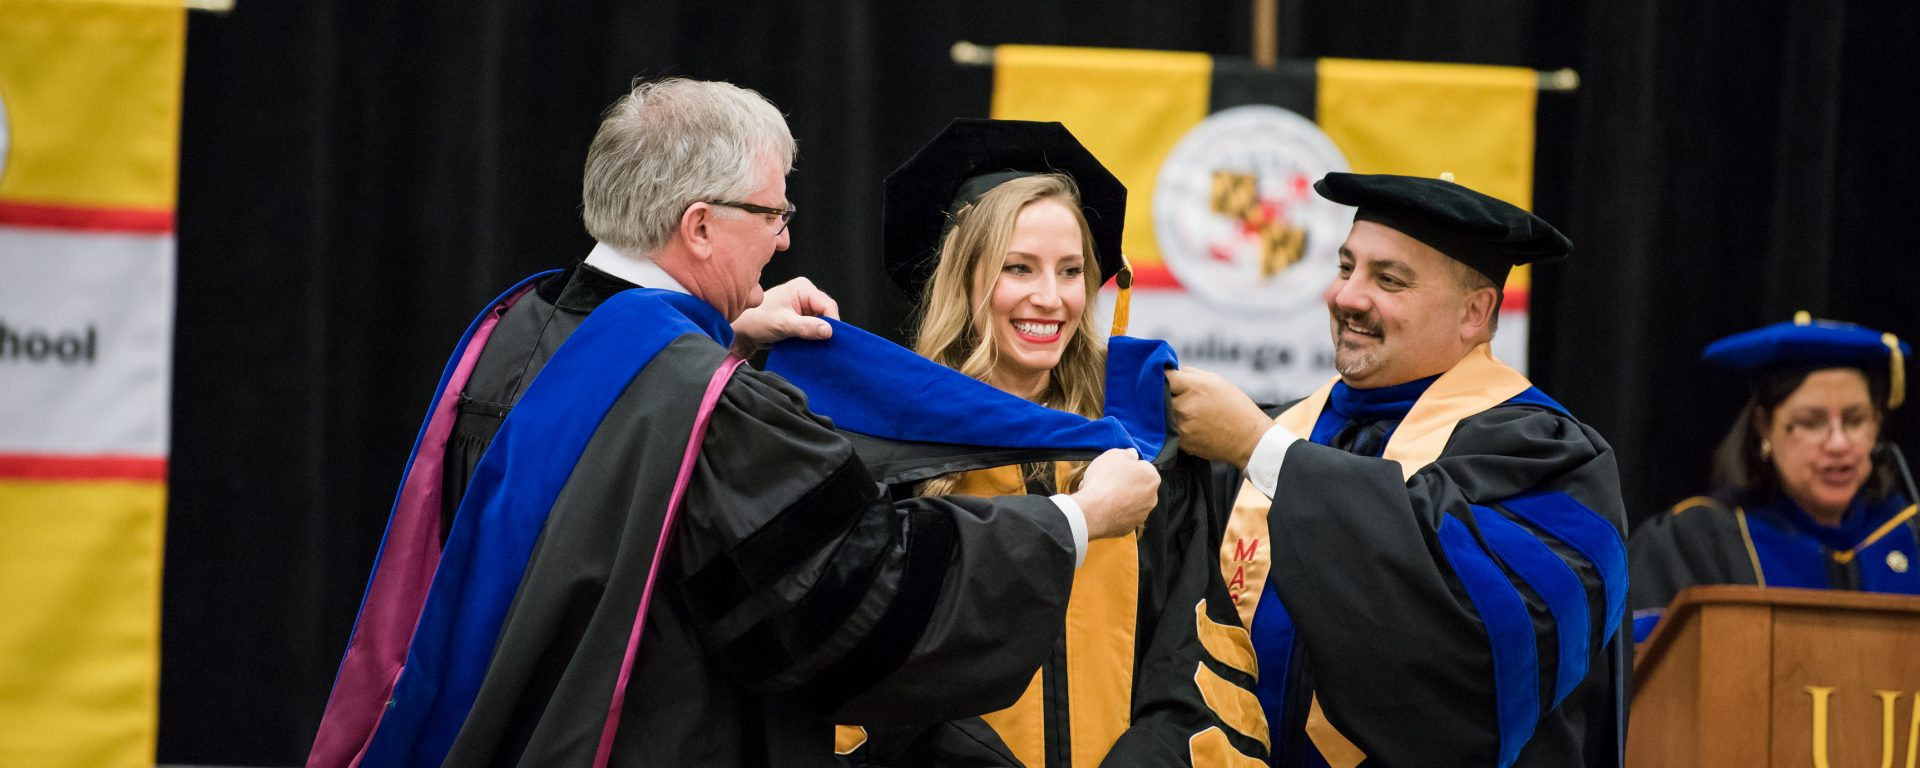 U.S. News recognizes UMBC graduate programs as among best in the nation